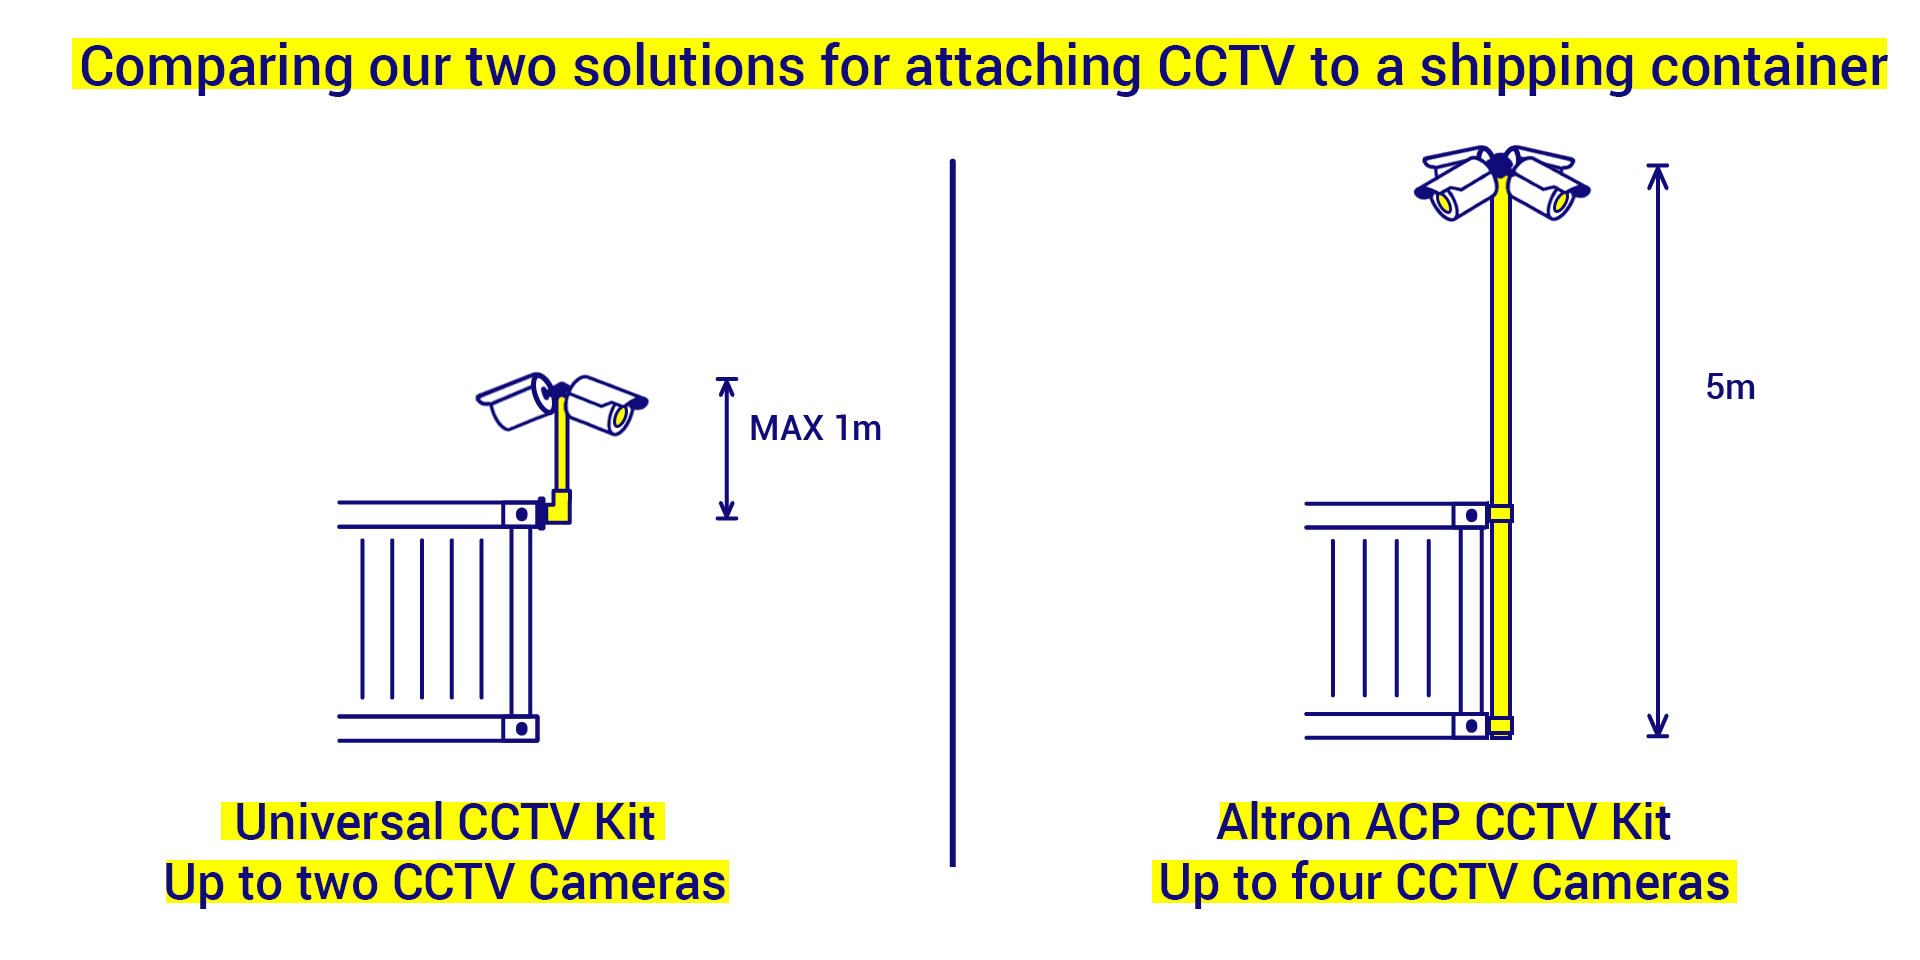 Comparing our two solutions for attaching CCTV to a shipping container